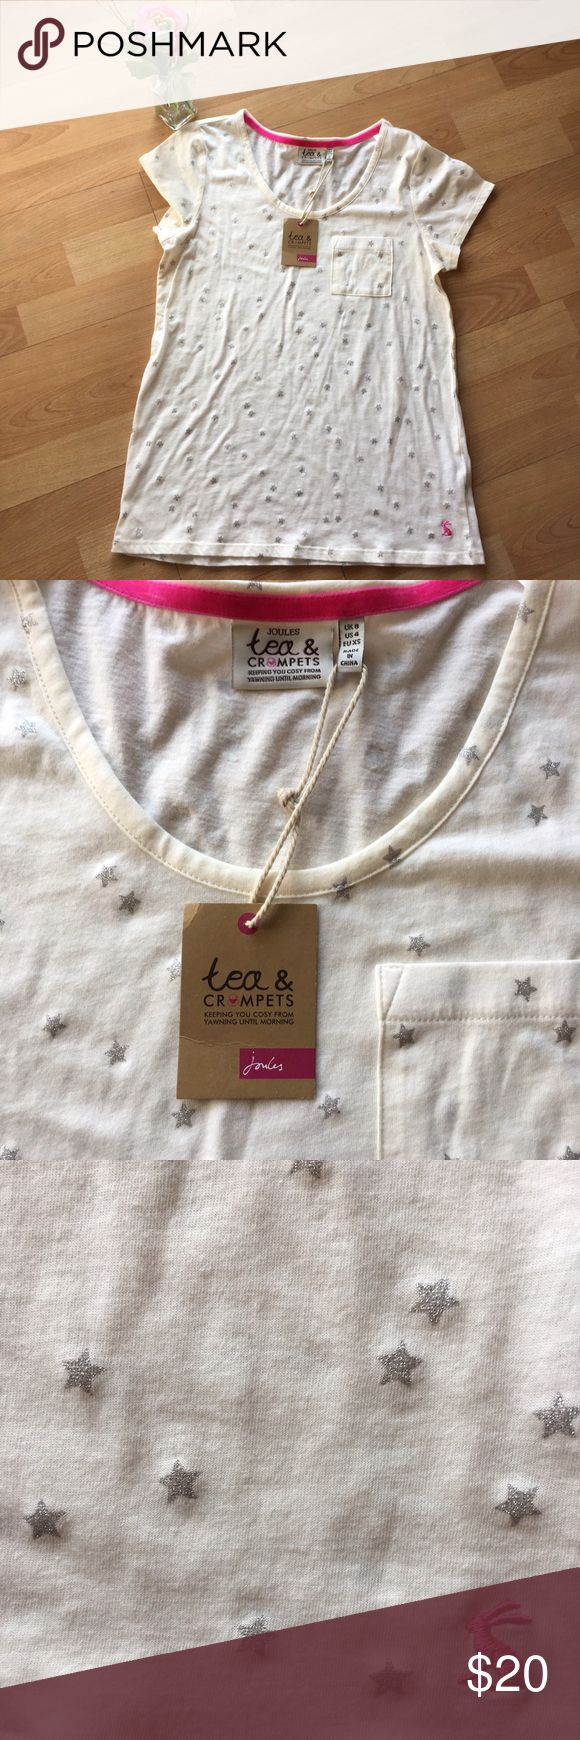 "Joules Tea and Crumpets Lounge Top Brand new and buttery soft! From Joules Tea and Crumpets line that promises to ""keep you cozy from yawning to morning."" This collection is crafted from lightweight fabrics that are perfect for balmy evenings and lazy Sunday mornings. Joules Tops Tees - Short Sleeve"